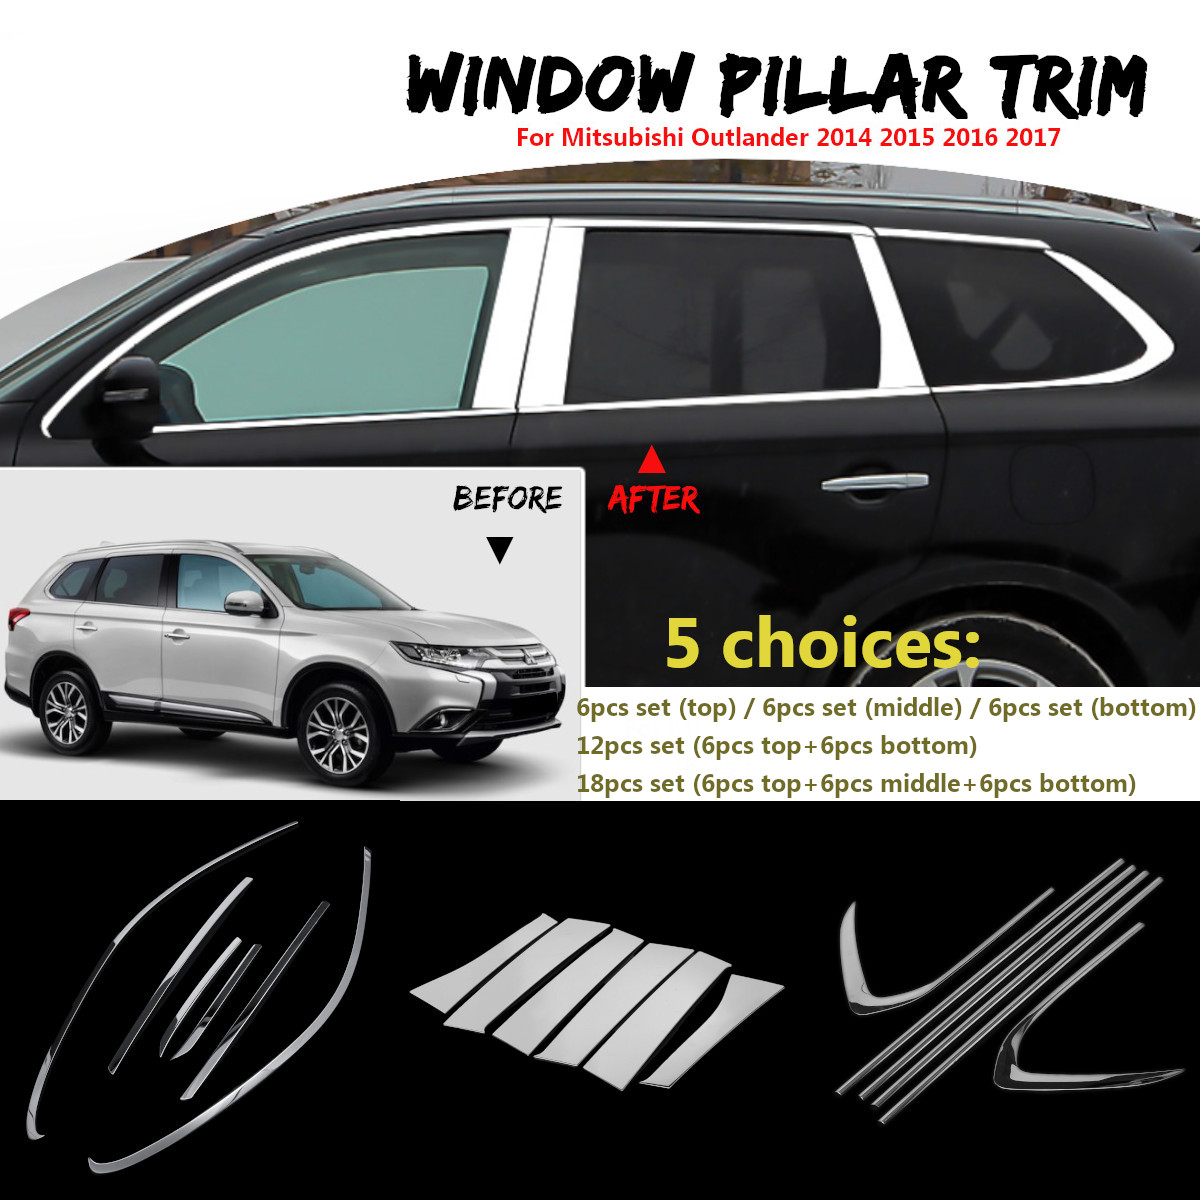 Car Window Pillar Trim Cover Stainless Steel Chrome Decoration for Mitsubishi Outlander 2014 2015 <font><b>2016</b></font> 2017 Car Styling image